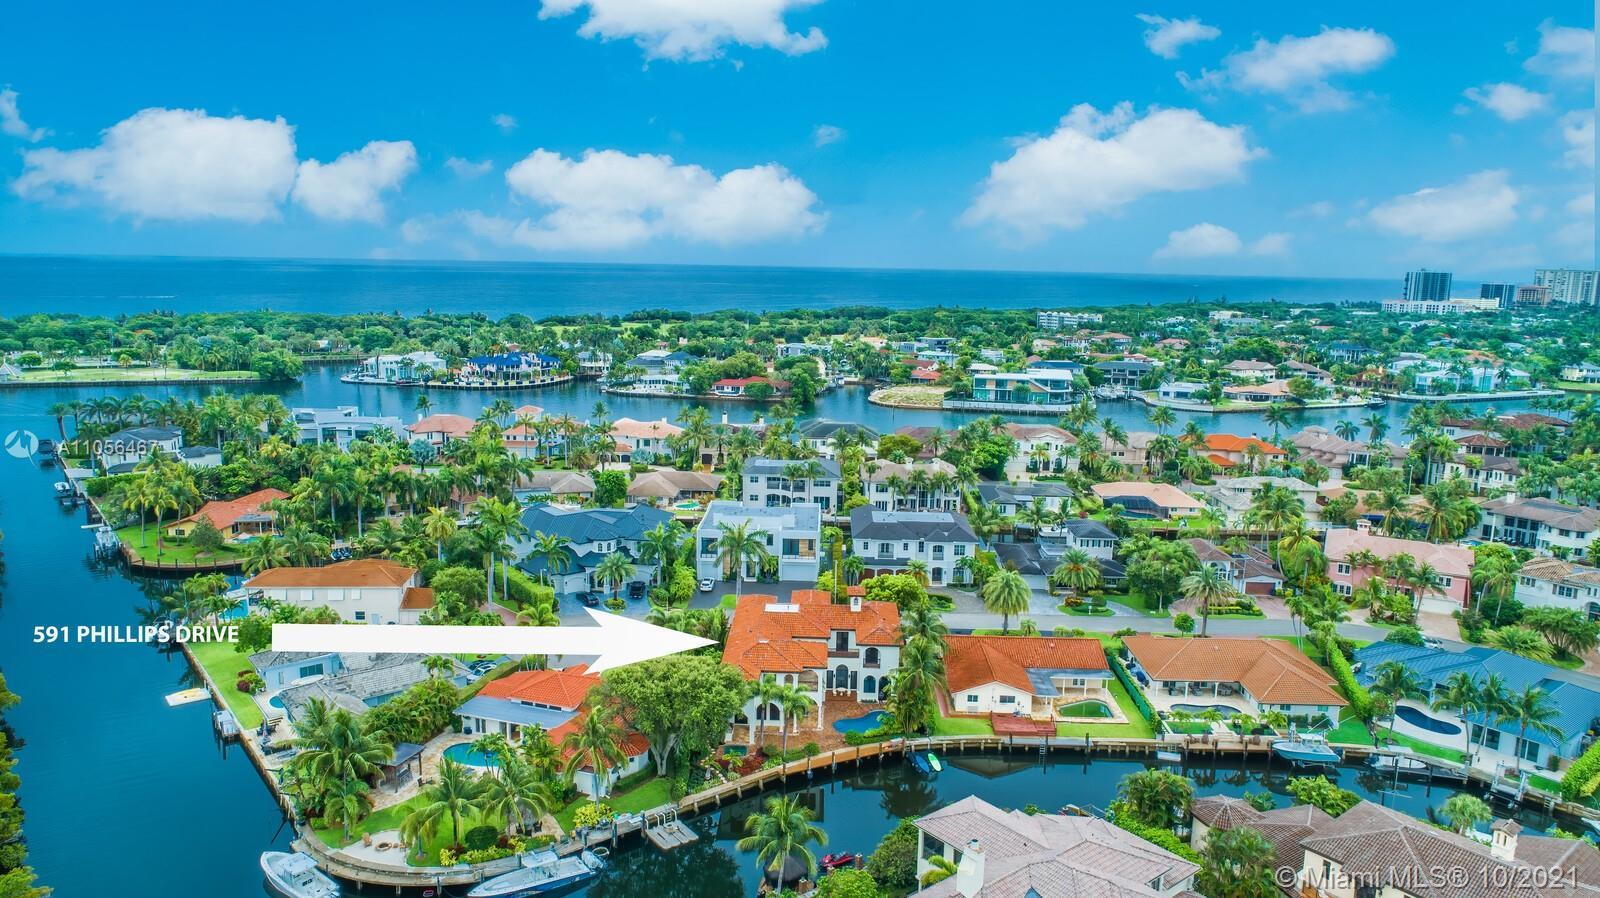 A true waterfront masterpiece estate! Located right in the heart and soul of beautiful Boca Raton, t